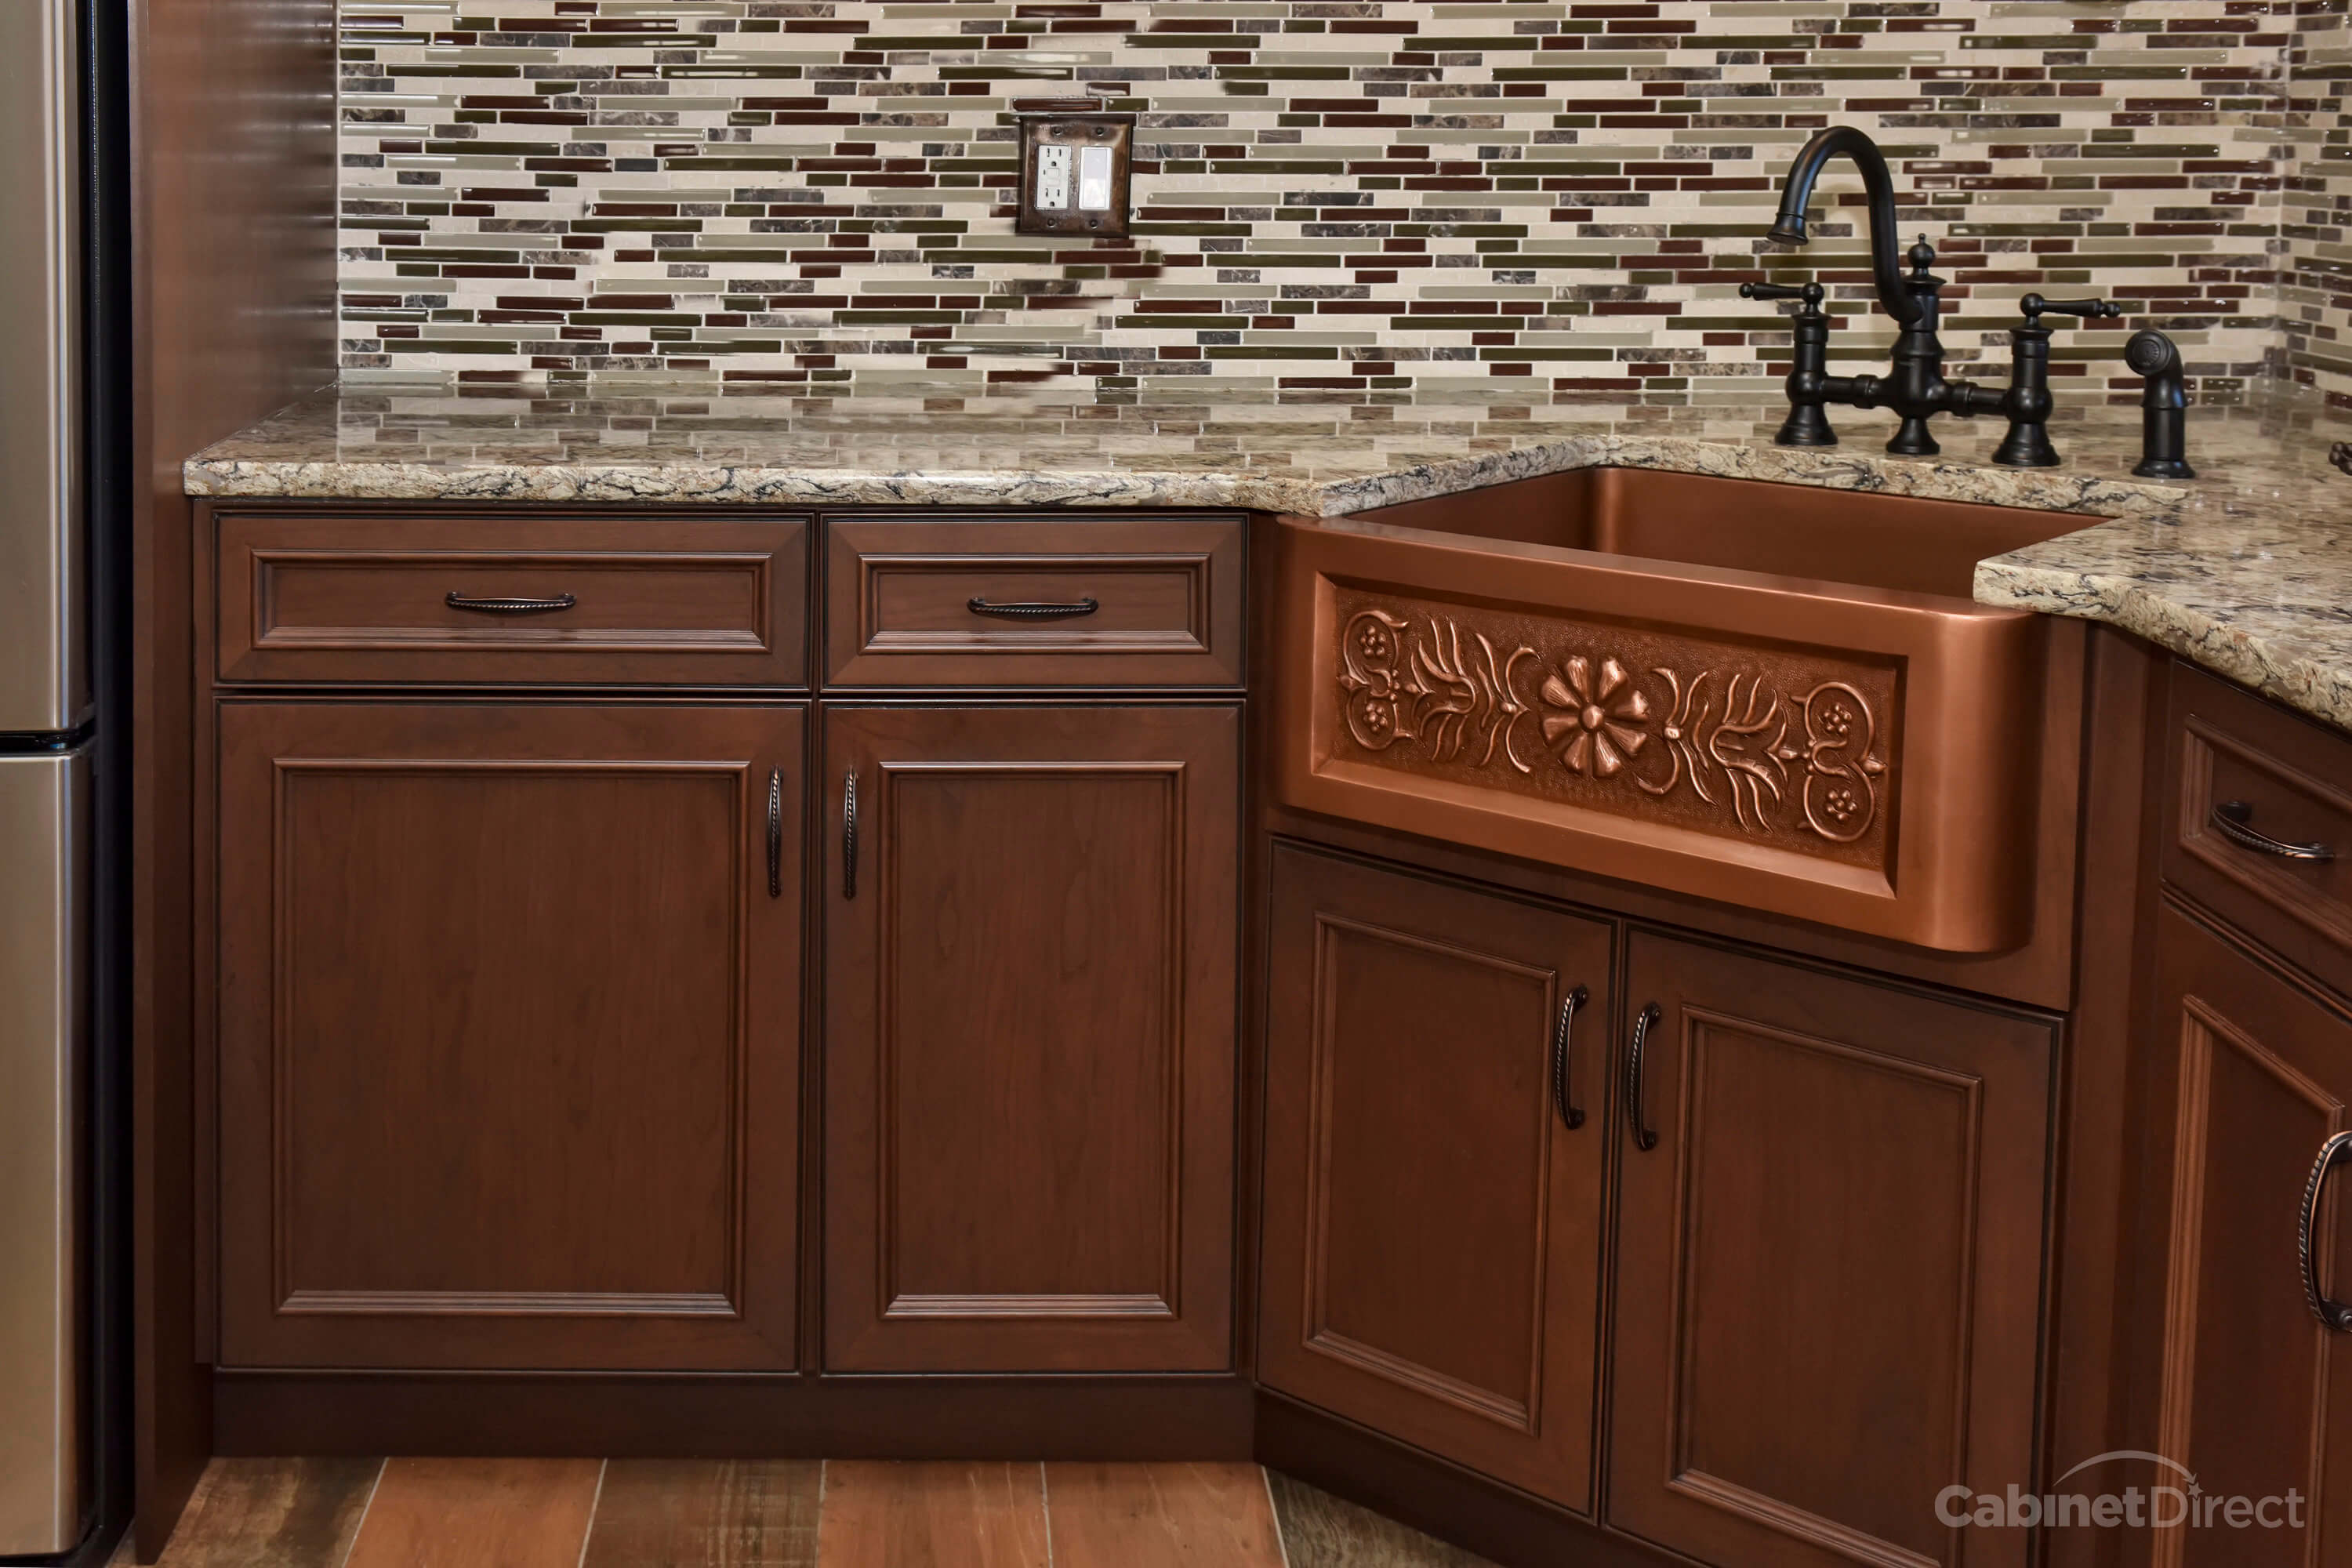 UltraCraft Frisco Kitchen  Cabinet Direct